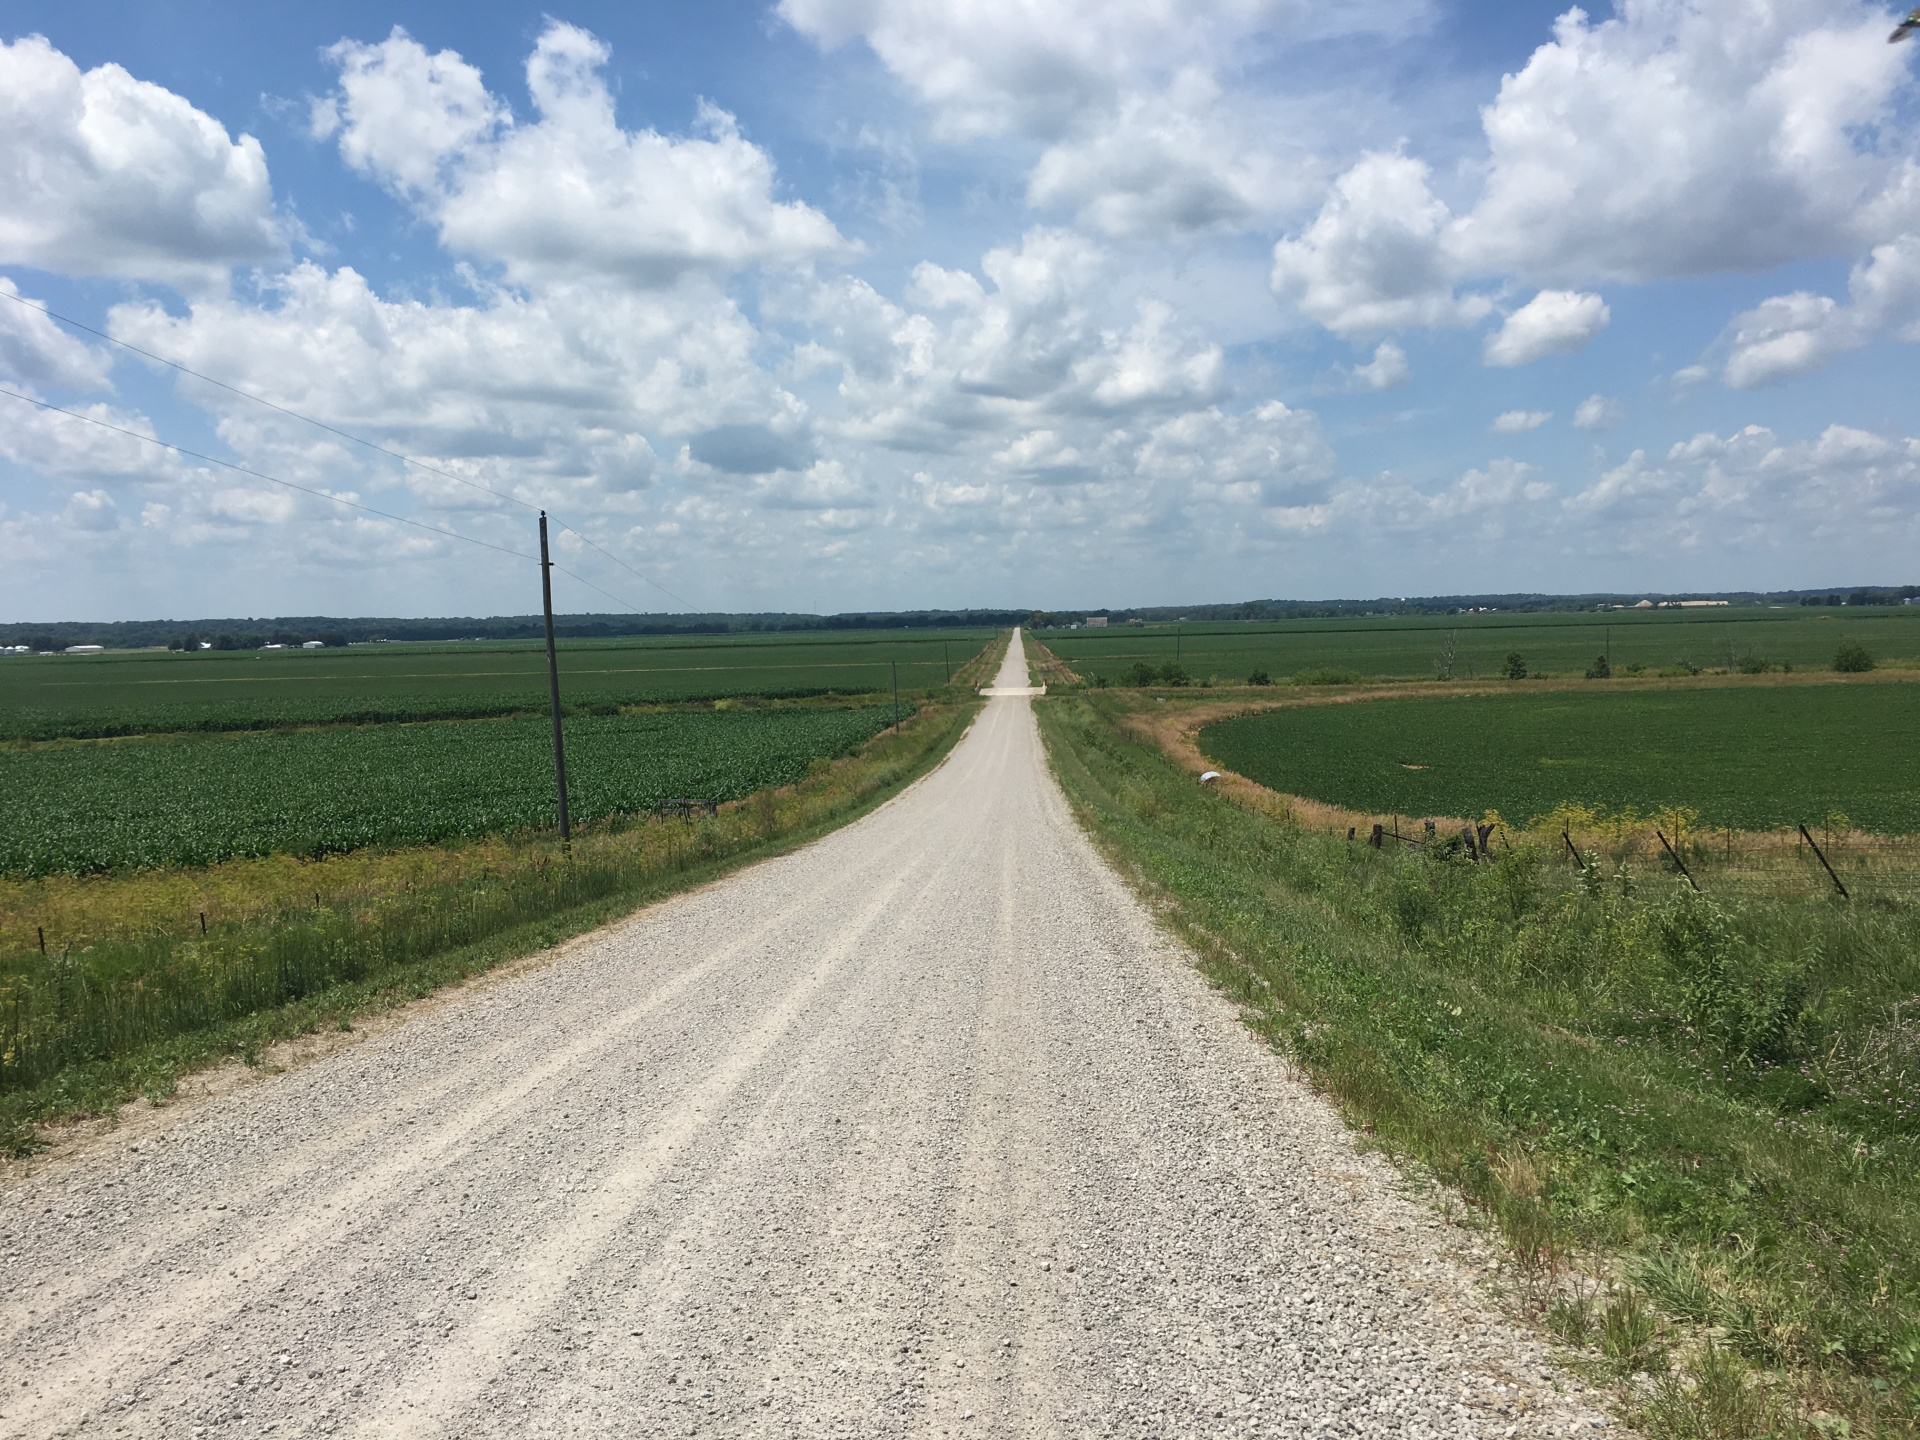 The Great Plains: Walking through Country and Corn